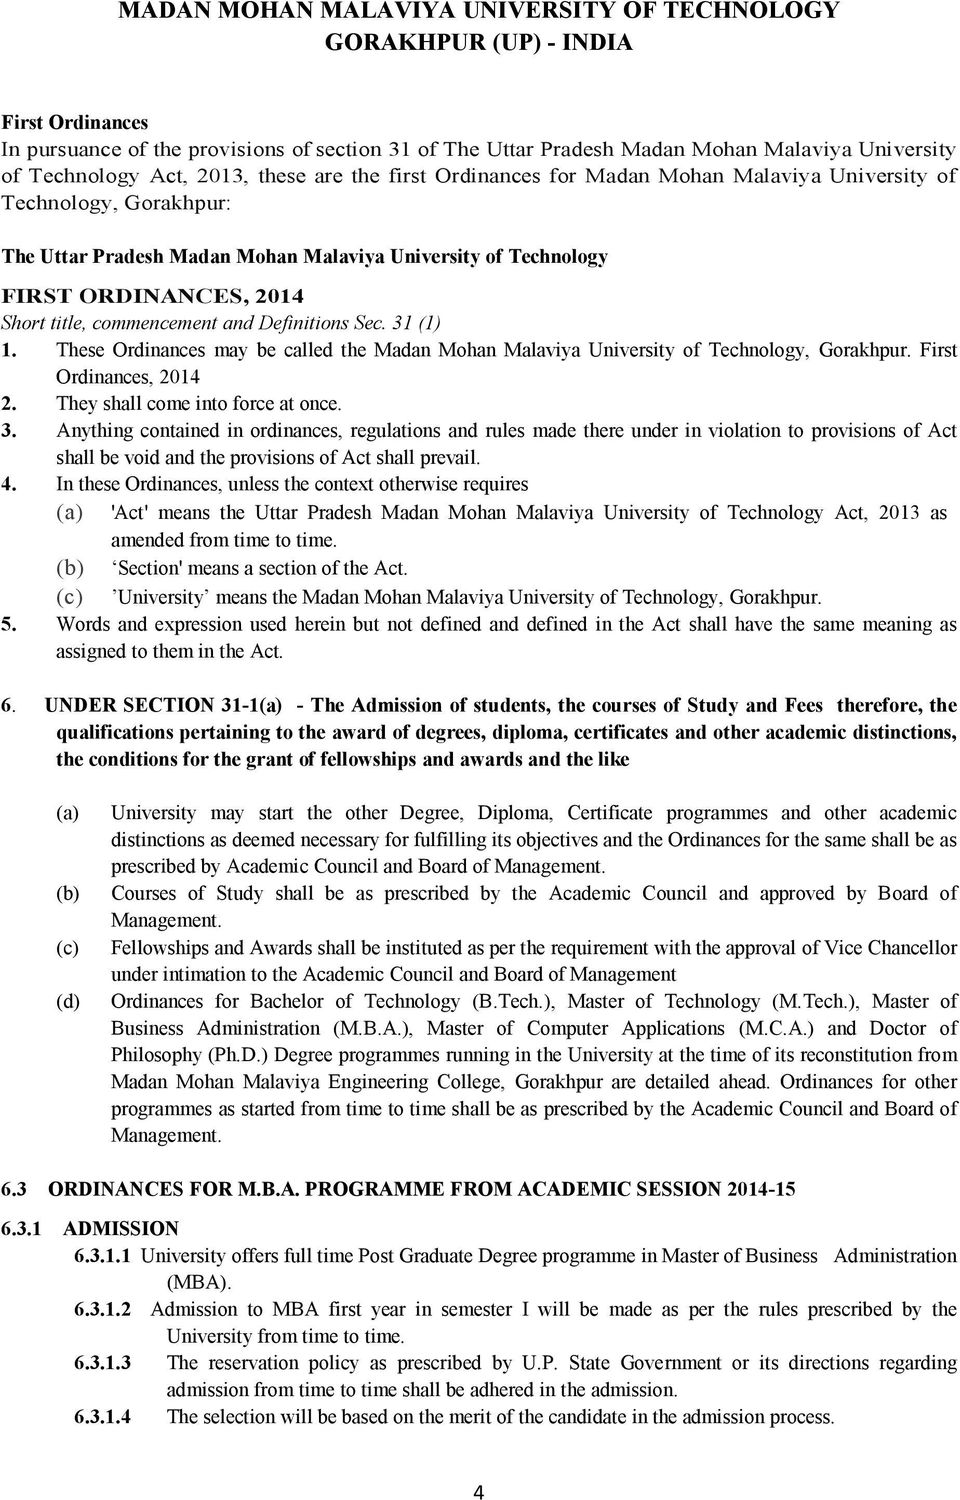 title, commencement and Definitions Sec. 31 (1) 1. These Ordinances may be called the Madan Mohan Malaviya University of Technology, Gorakhpur. First Ordinances, 2014 2.